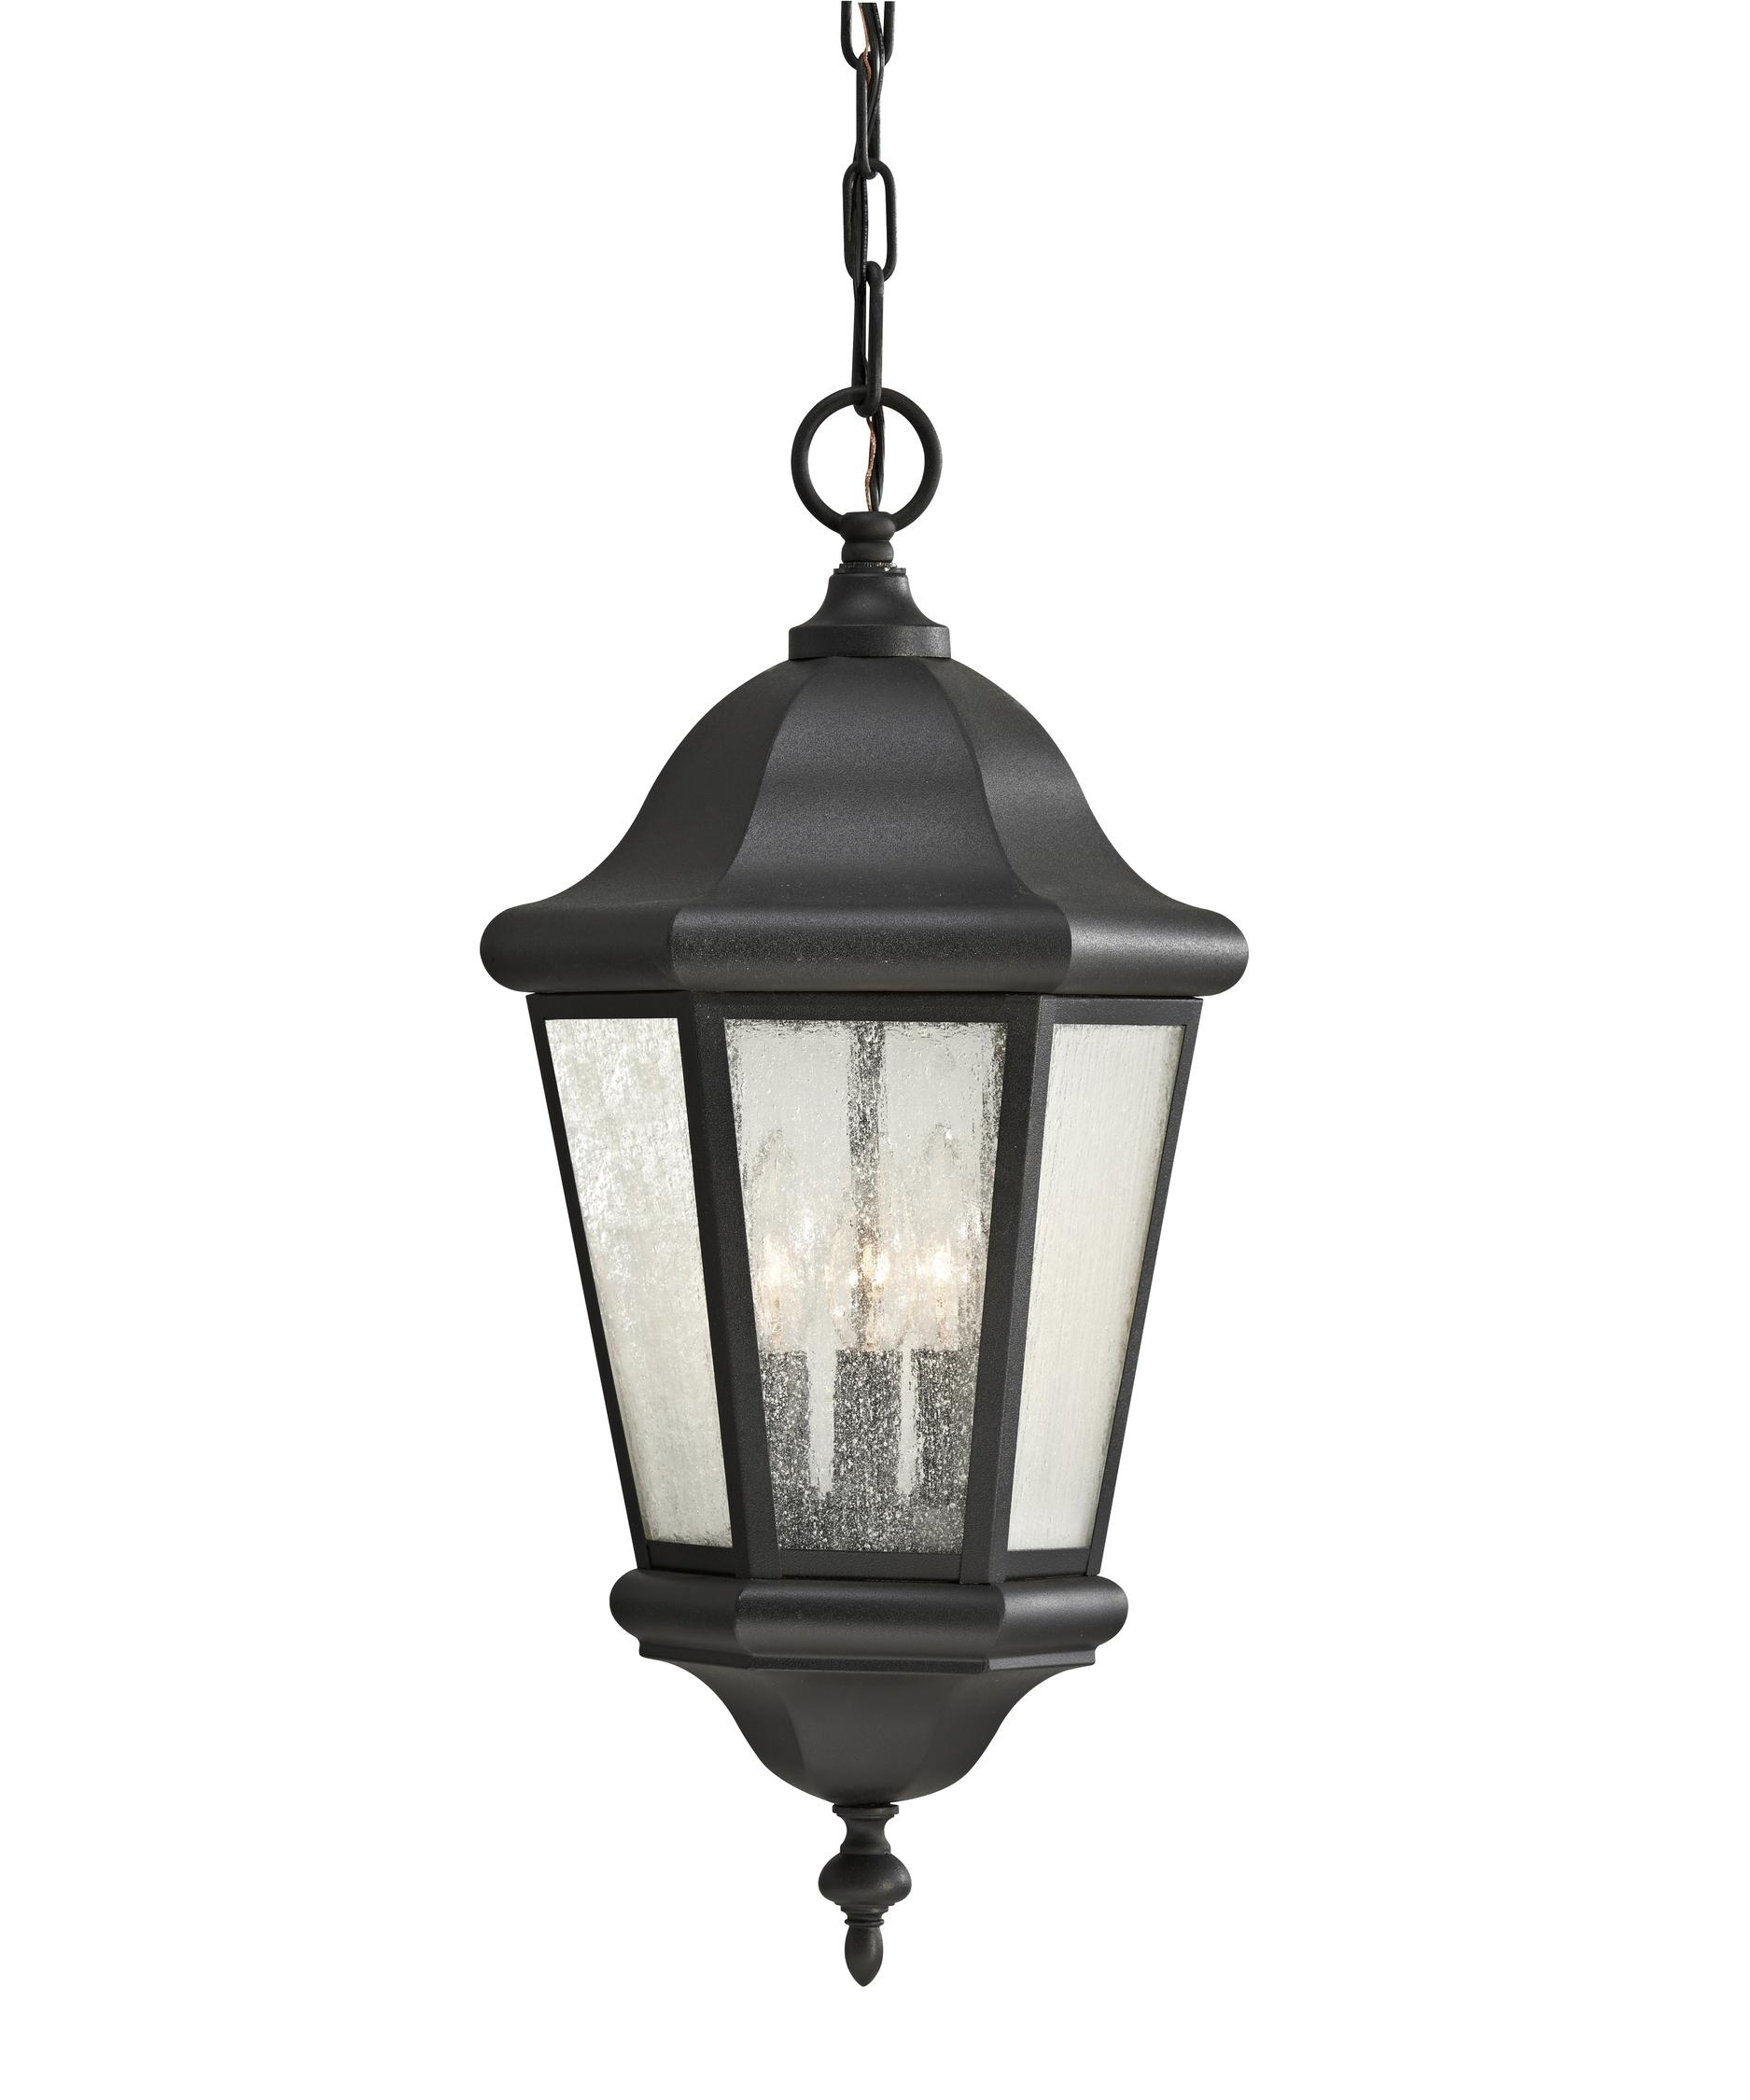 Outdoor Hanging Glass Lanterns For Well Known Murray Feiss Ol5911 Martinsville 10 Inch Wide 3 Light Outdoor (View 5 of 20)